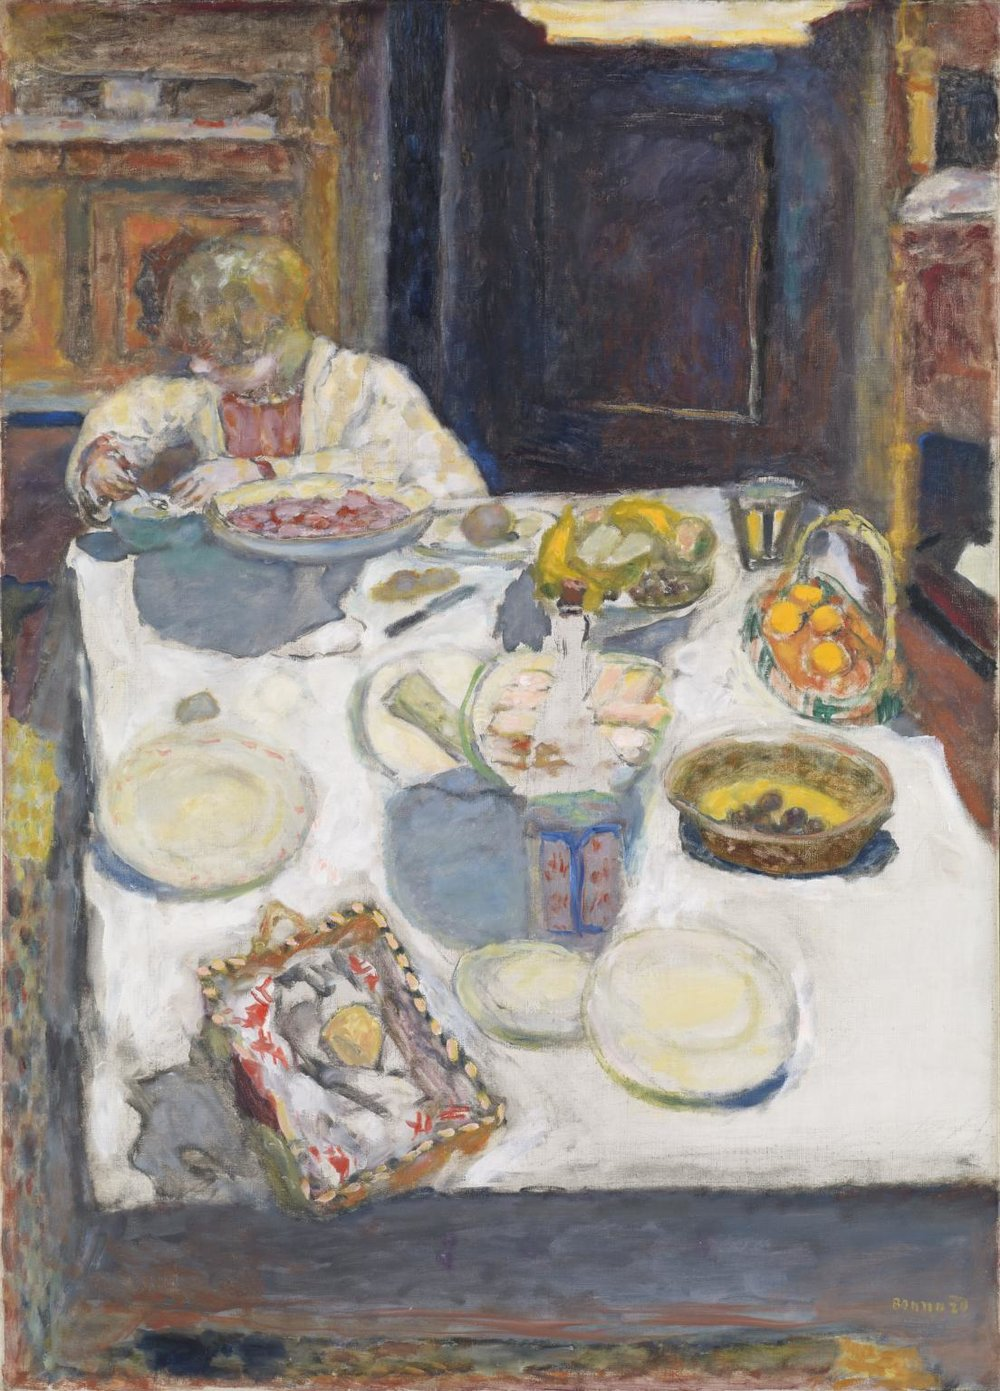 Pierre Bonnard,  The Table,  1925, oil on canvas